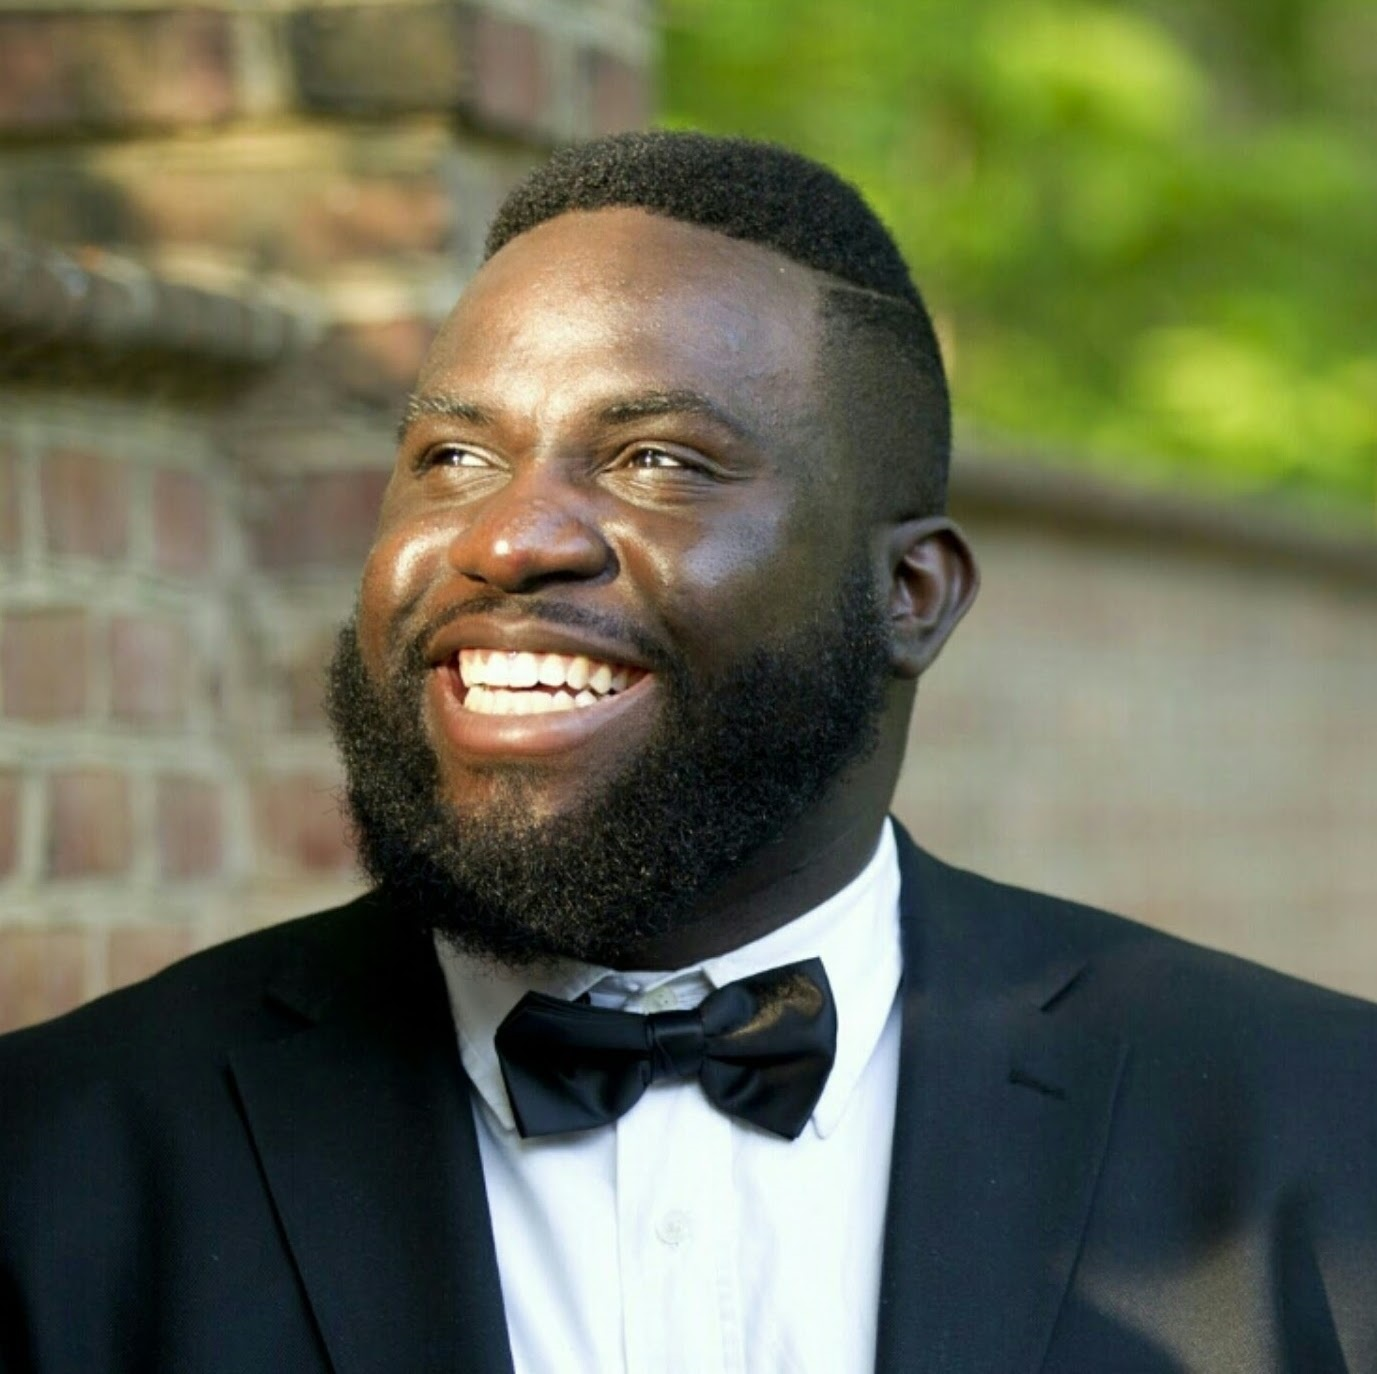 Sola Fadiran, Vocalist - Mr. Fadiran is a Nigerian-American lyric baritone and is currently studying acting at the Yale School of Drama. He has performed as a Young Artist with the Cincinnati Opera, as well as their